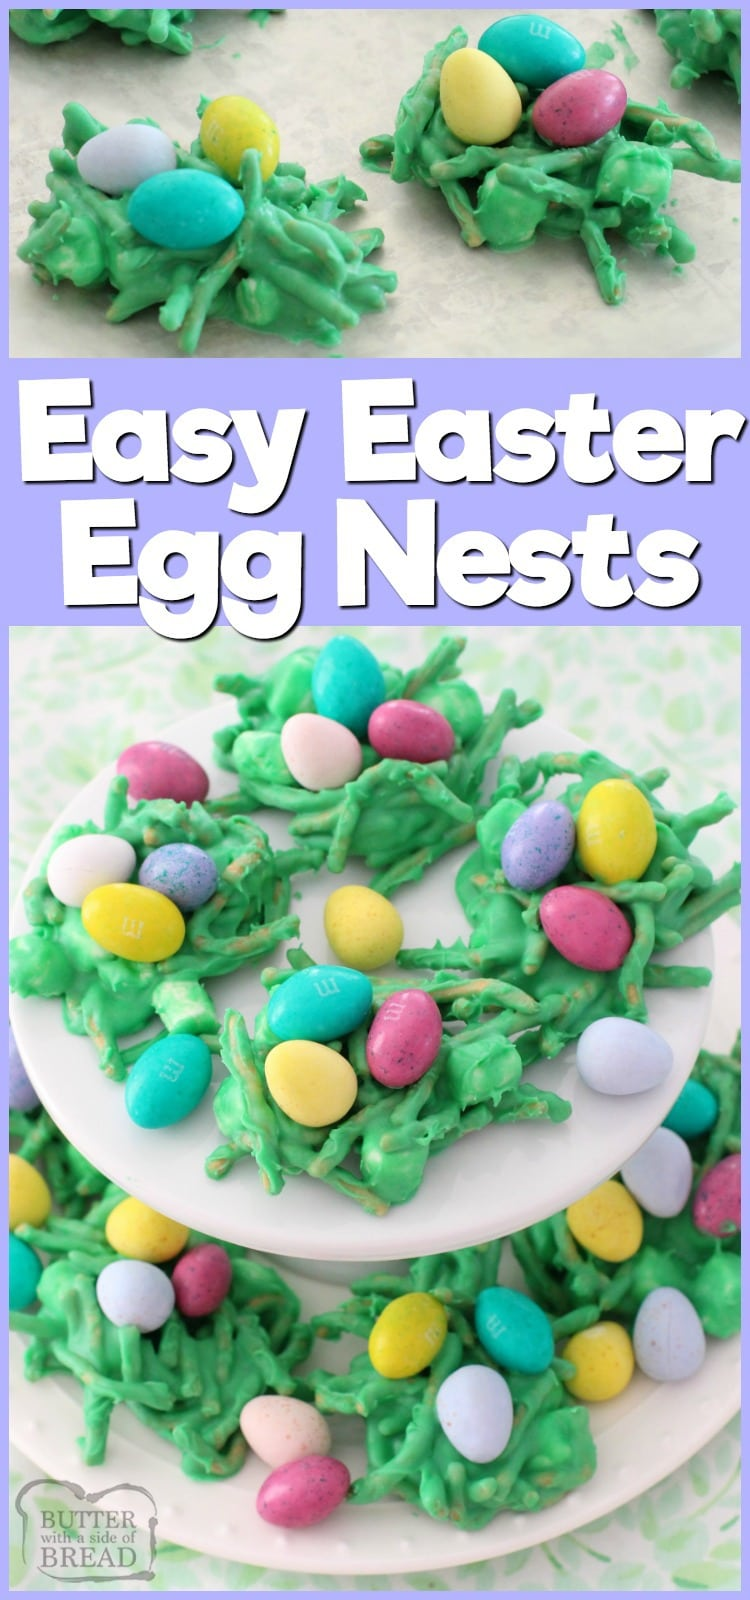 Easy Easter Egg Nests Candy - Butter With A Side of Bread